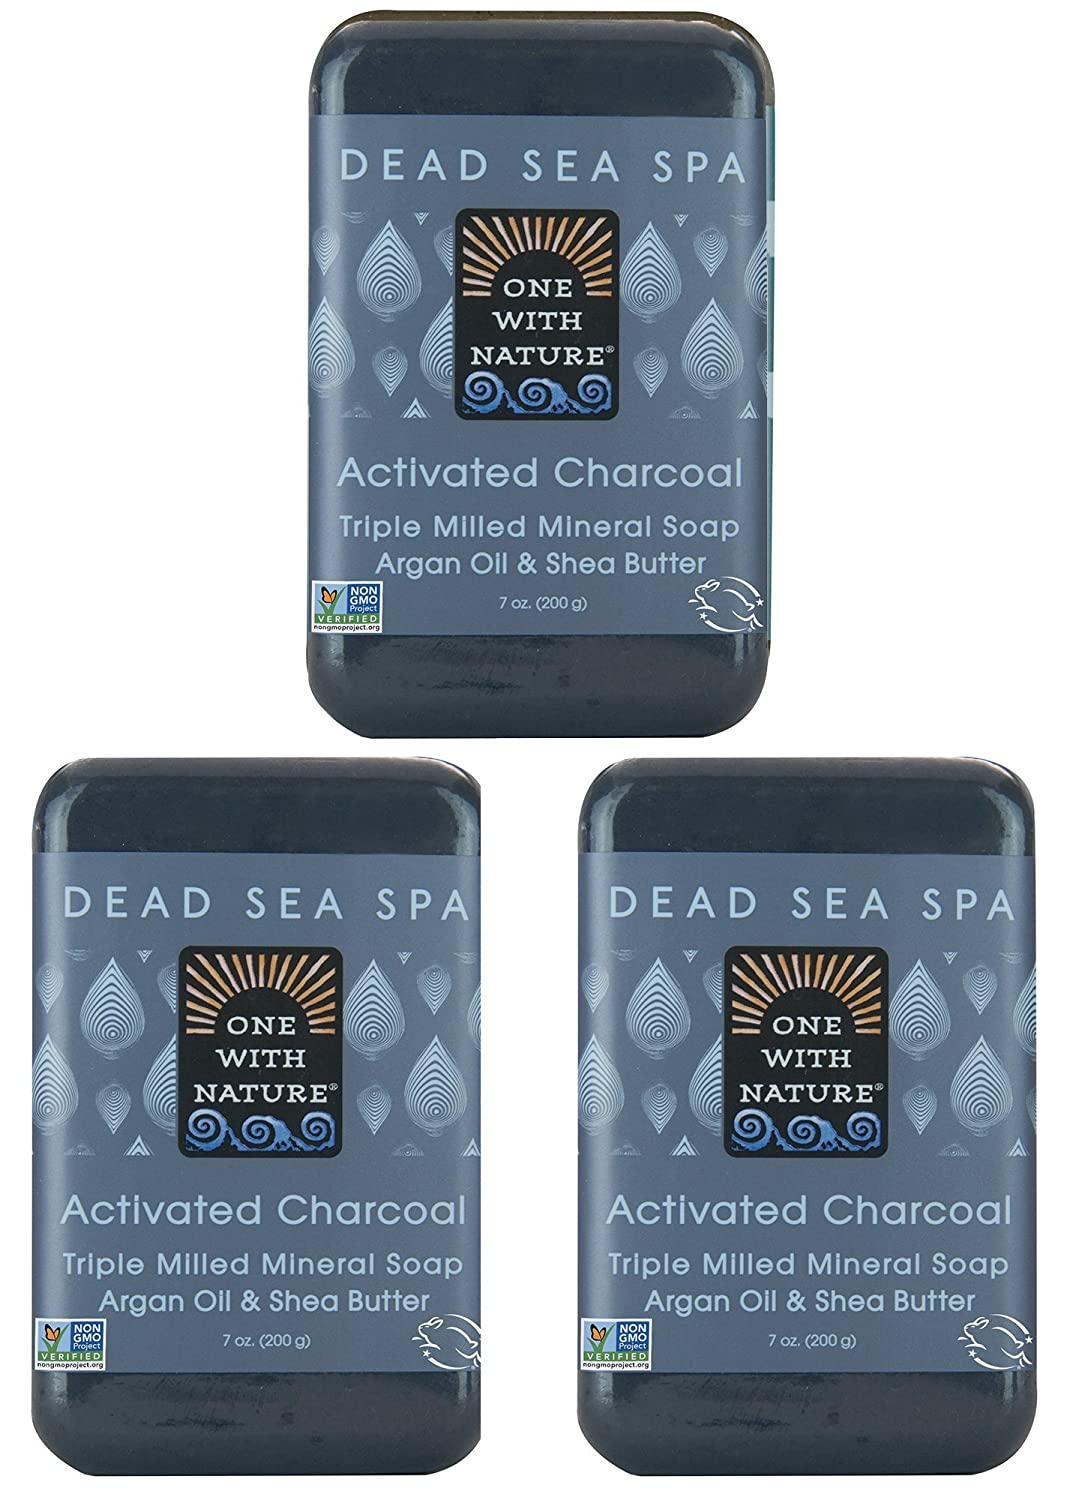 One With Nature Dead Sea Salt Charcoal Soap